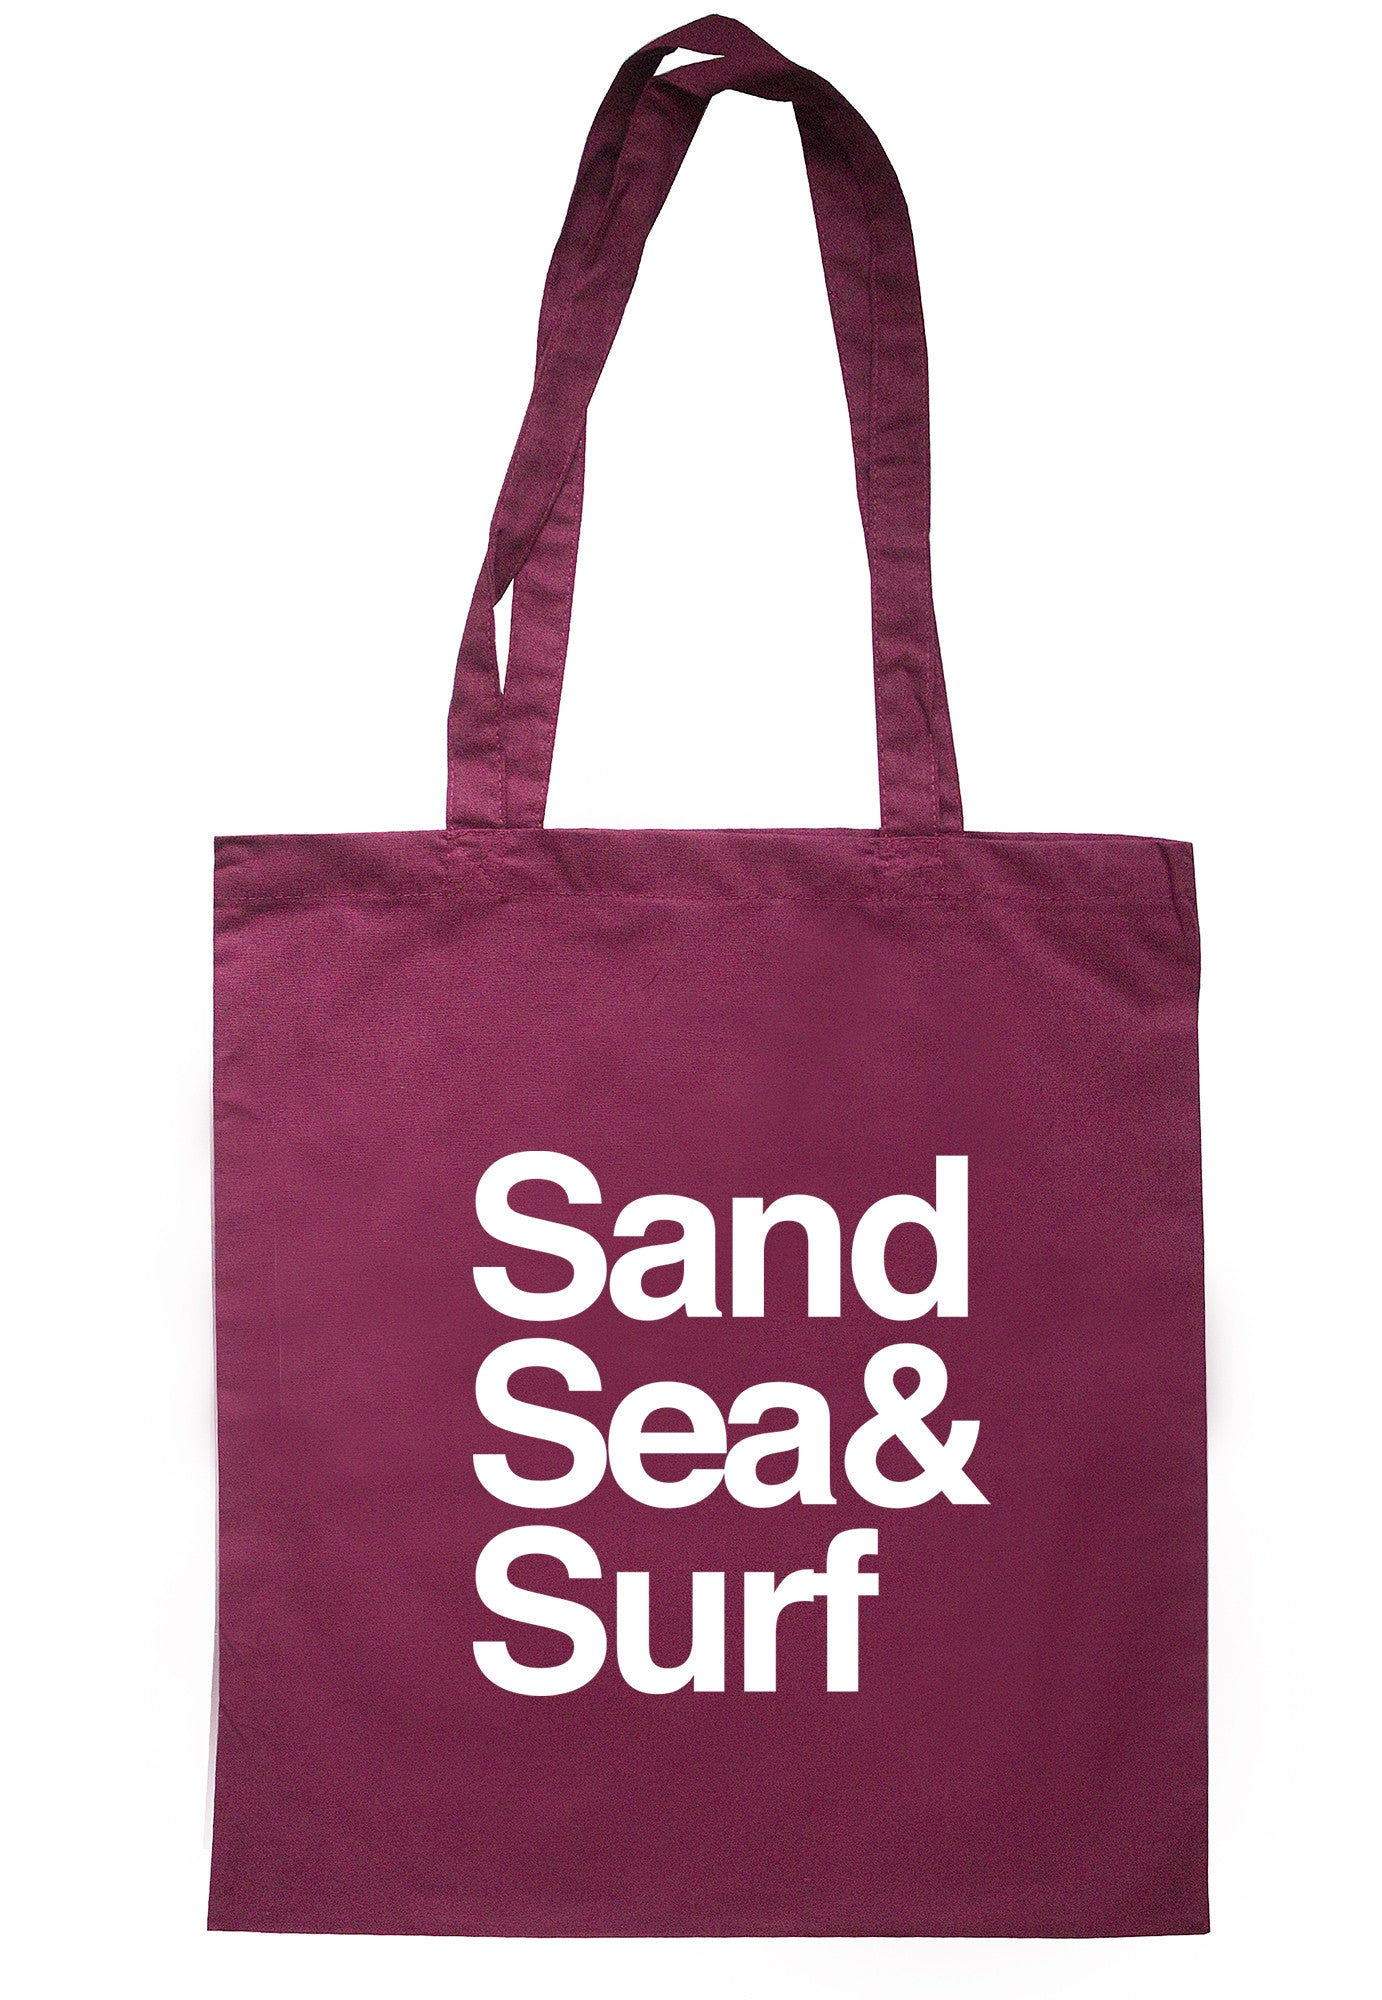 Sand Sea & Surf Tote Bag TB0568 - Illustrated Identity Ltd.